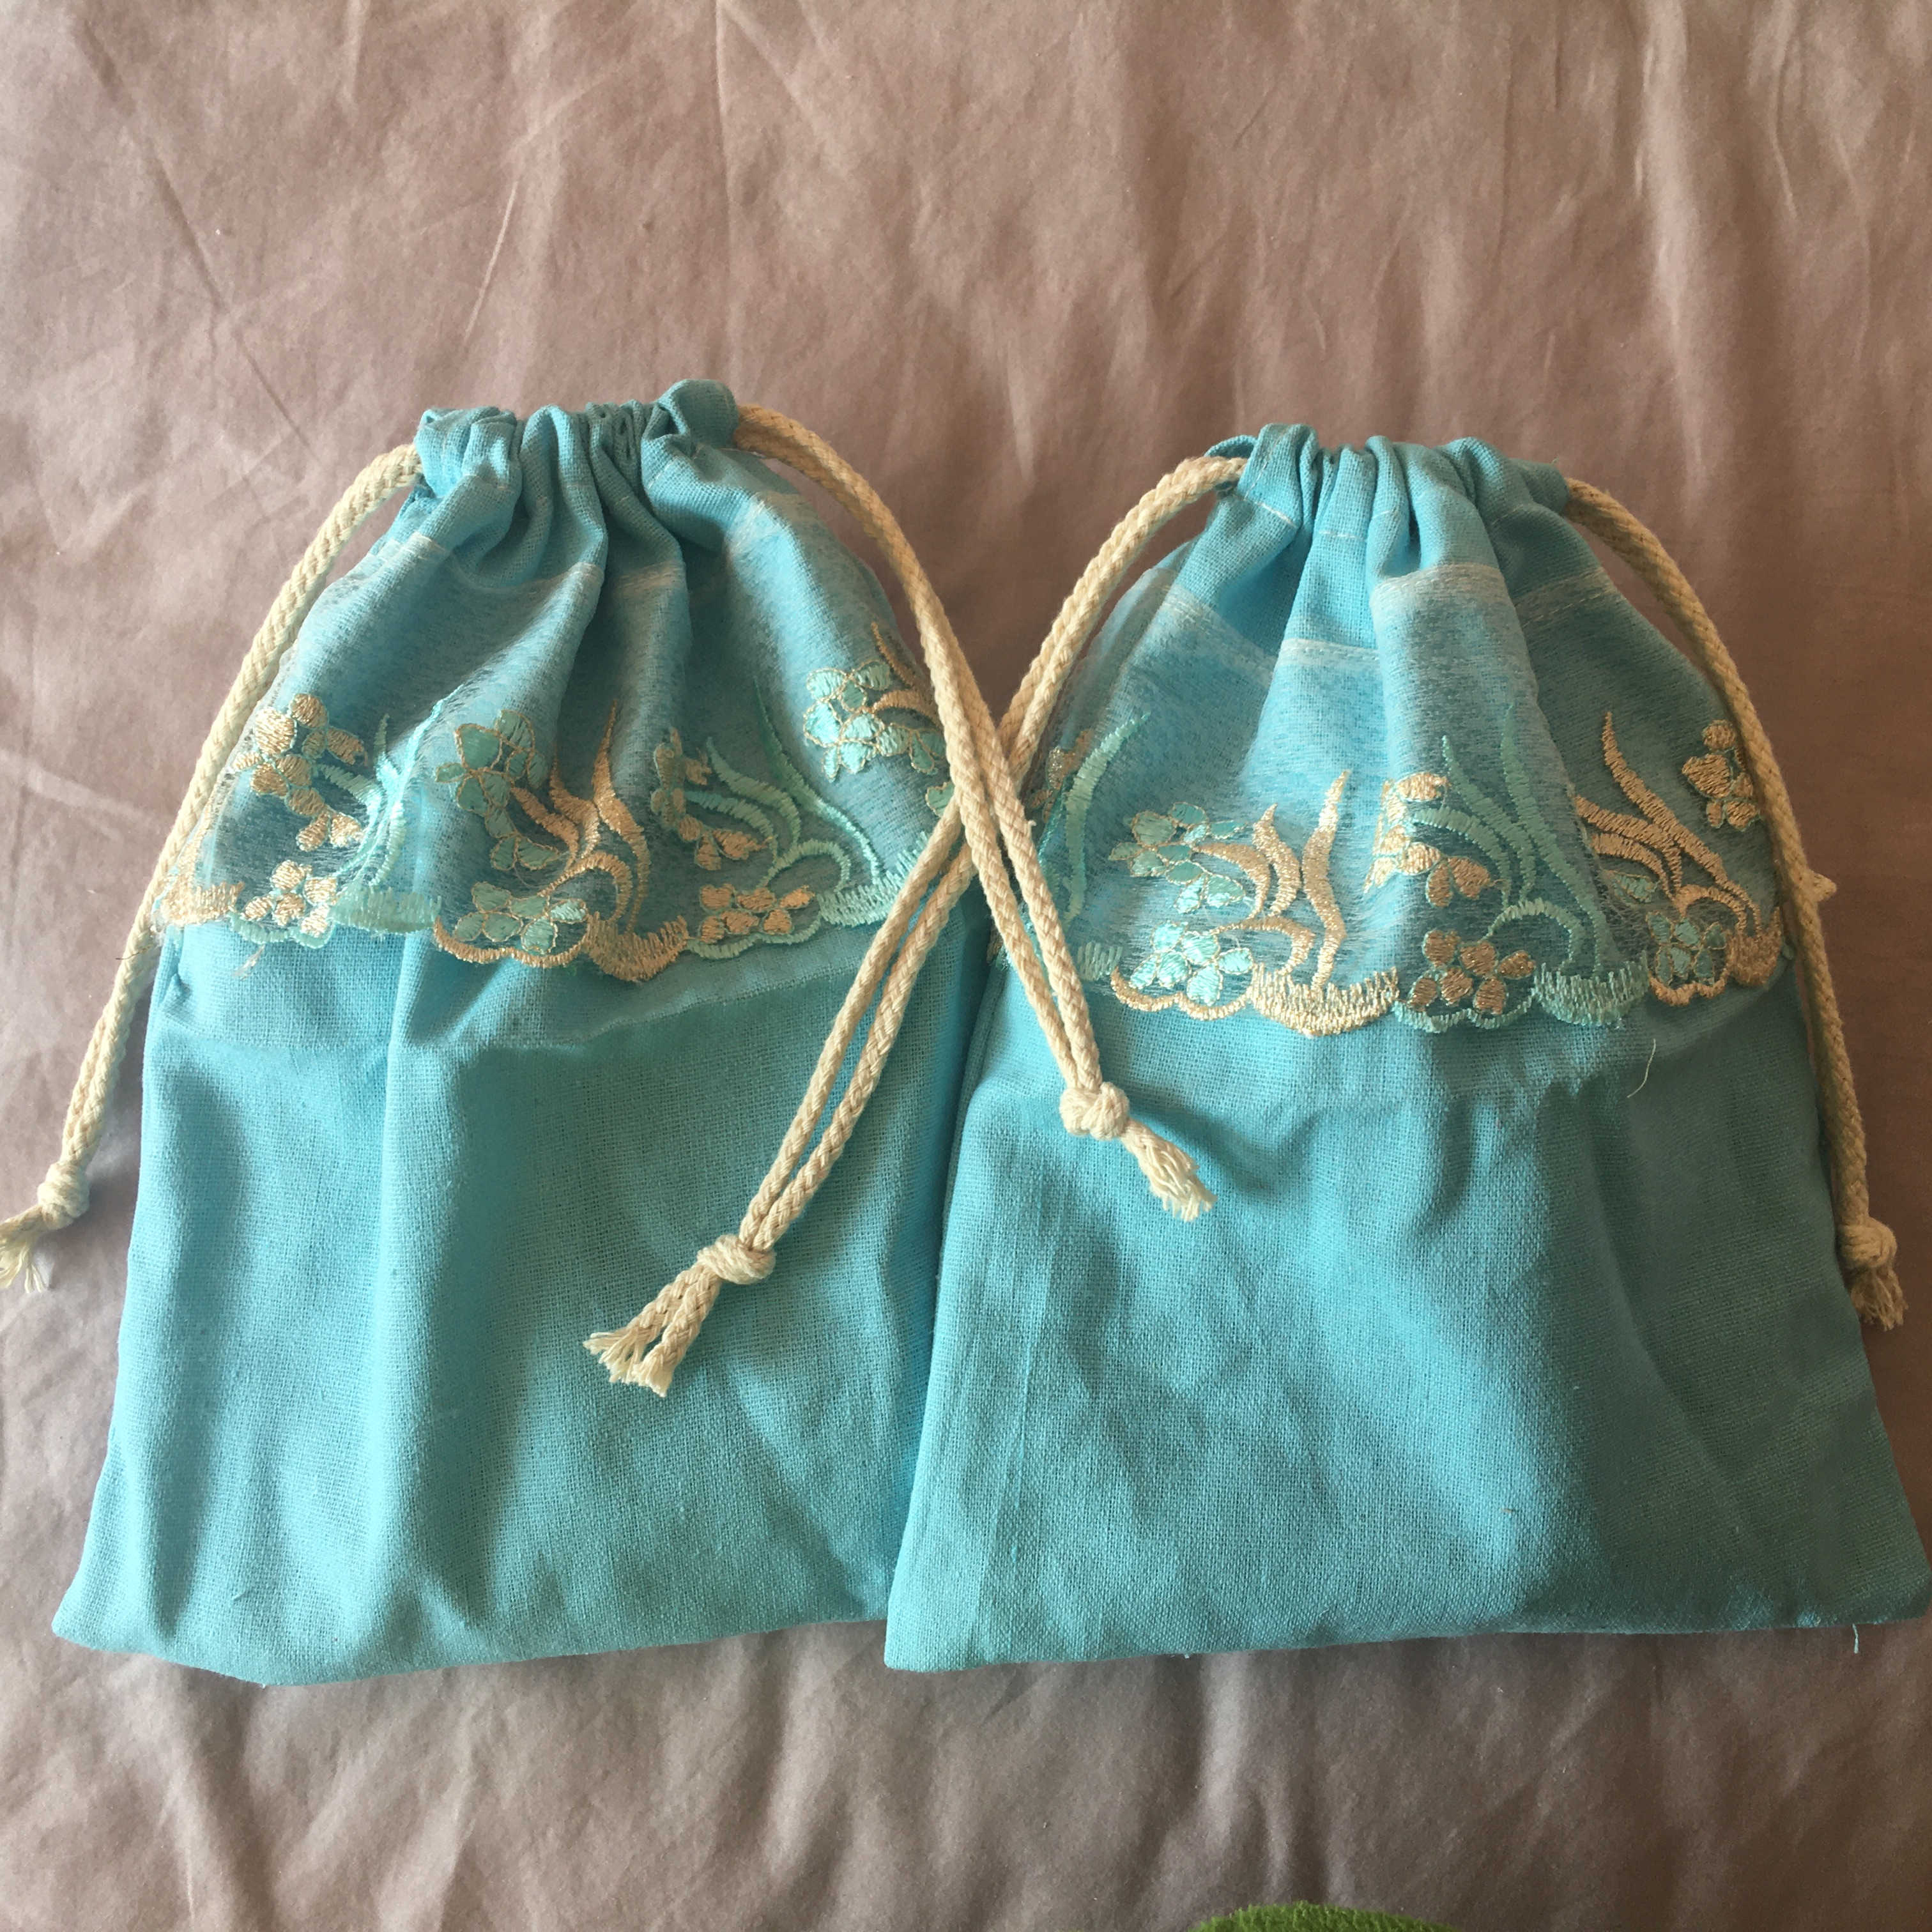 1pc Cotton Linen Drawstring Eco Organized Pouch Party Gift Bag Embroidered Trim Blue YL320g